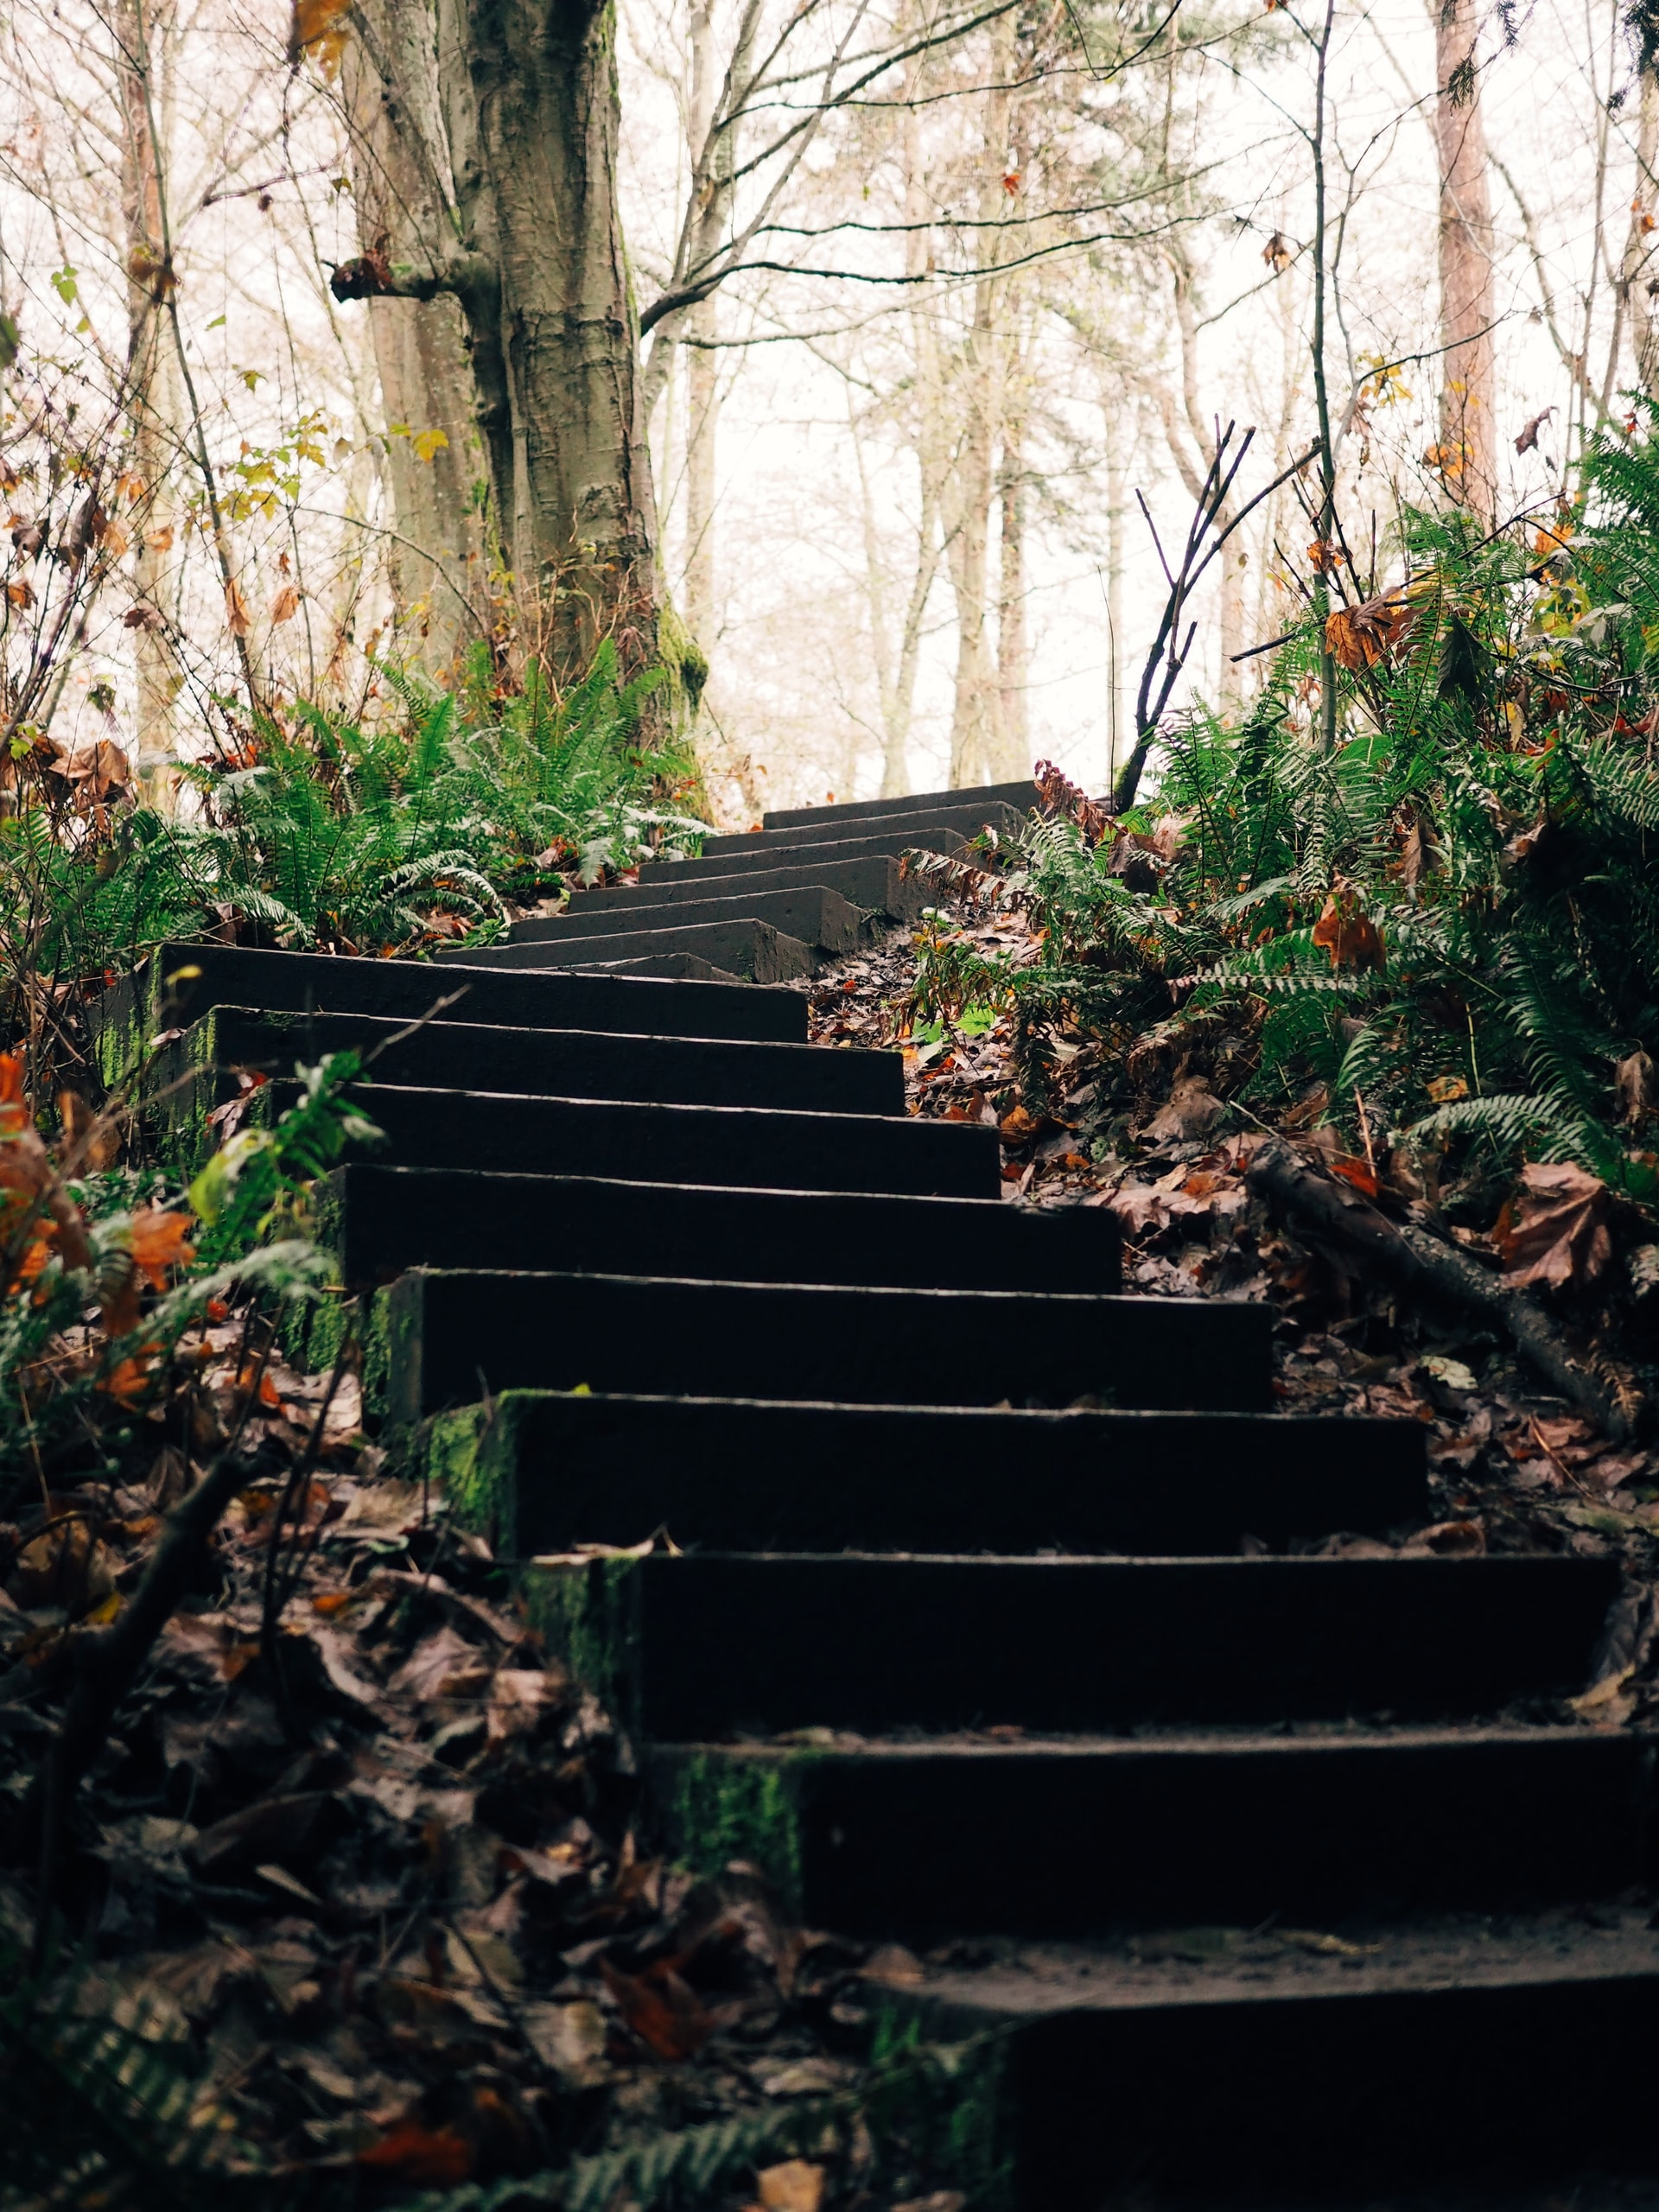 stair steps outside